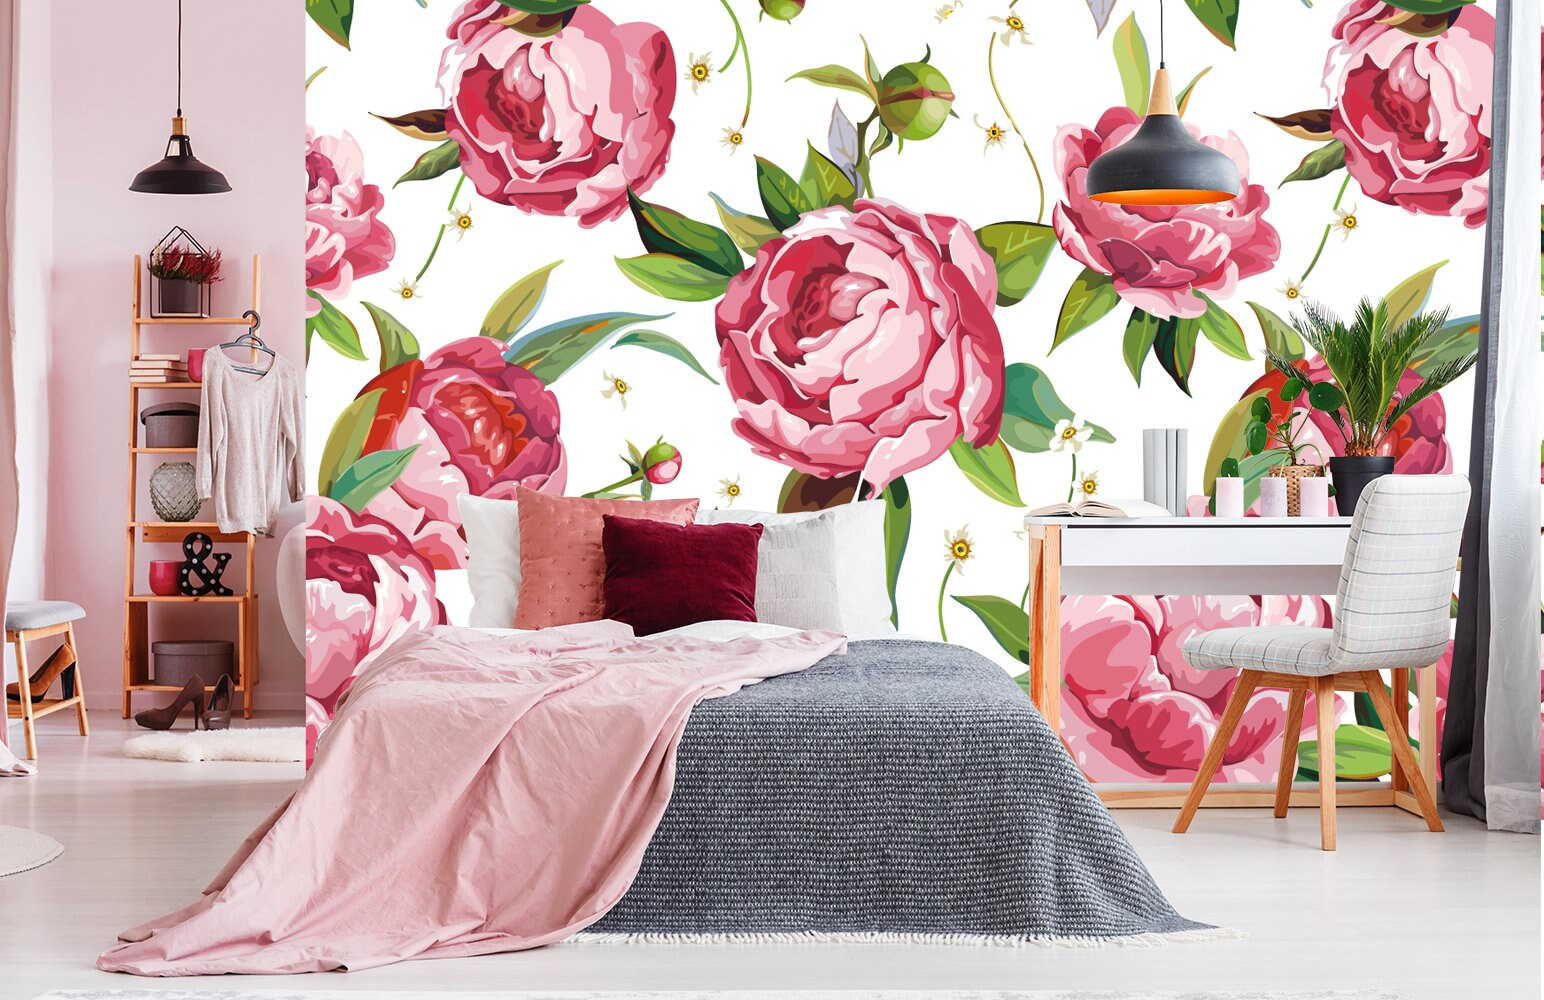 Flowers Wallpaper Peony Floral Wallpaper Removable Wallpaper Etsy